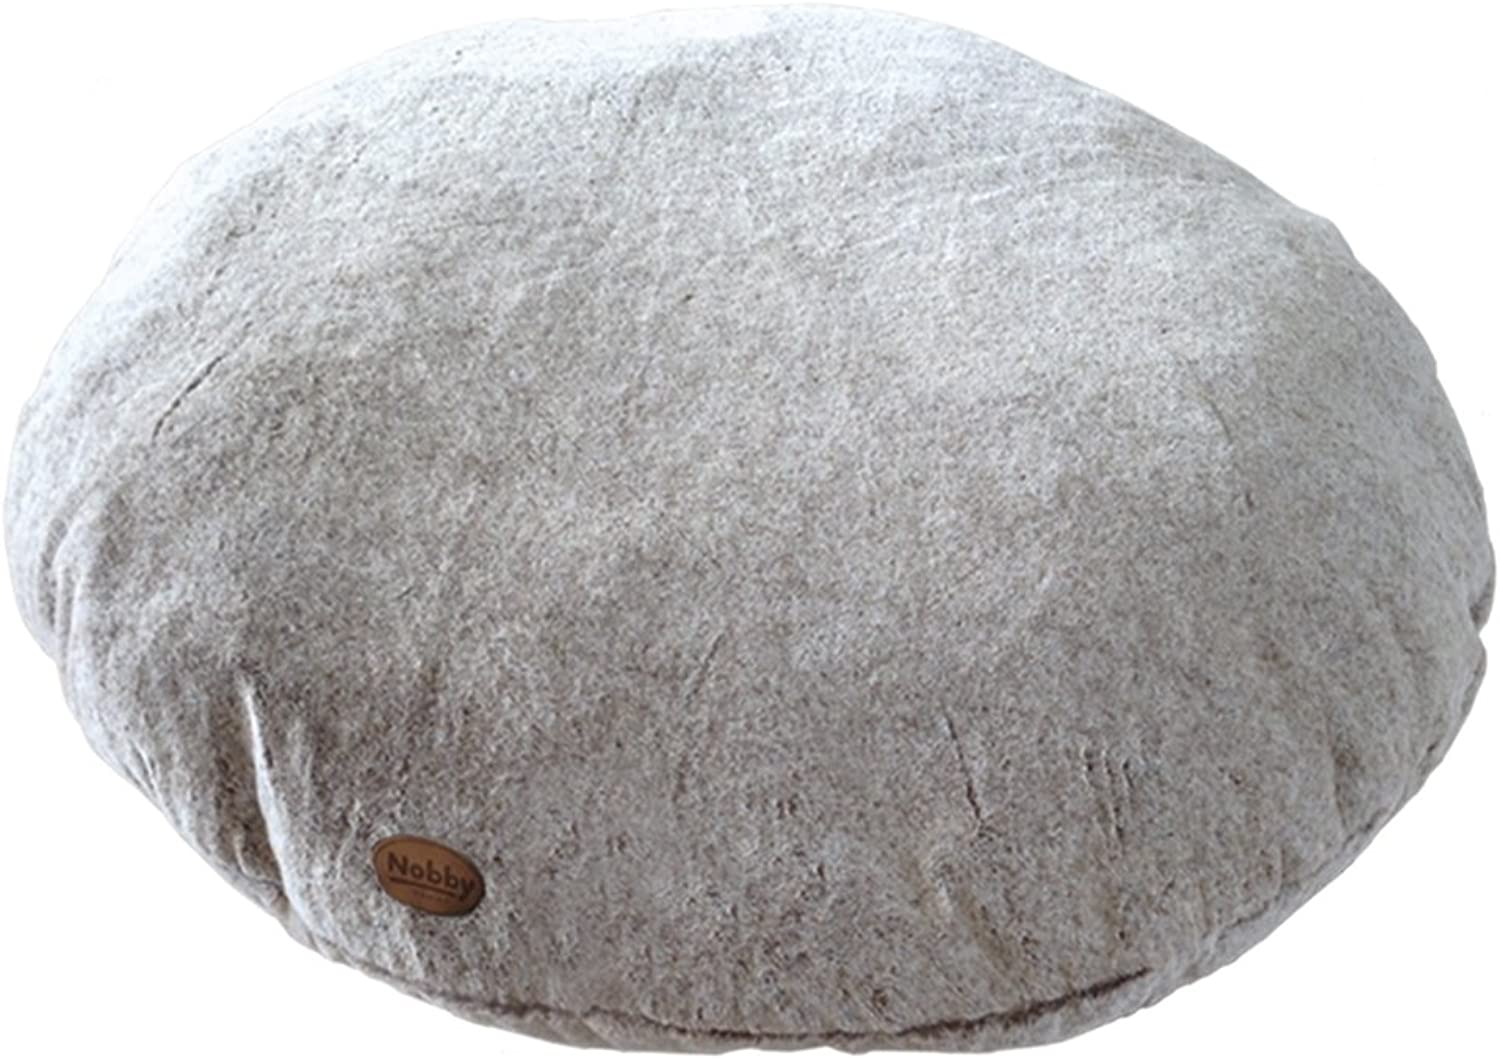 Nobby Cudly Comfort Cushion Round for Dogs and Cats